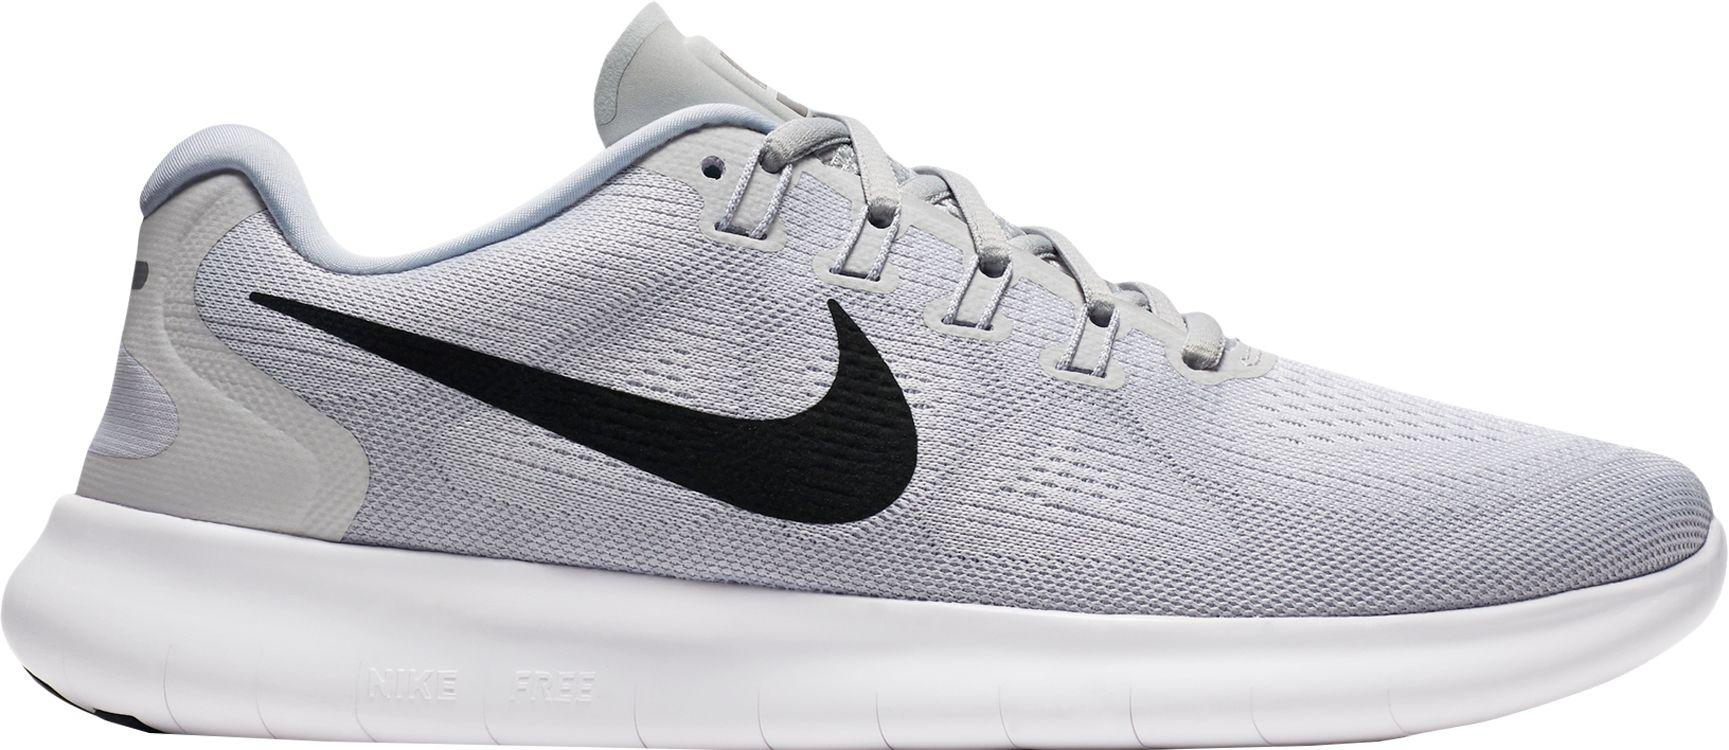 78baaba45f50 Lyst - Nike Free Rn 2017 Running Shoes in White for Men